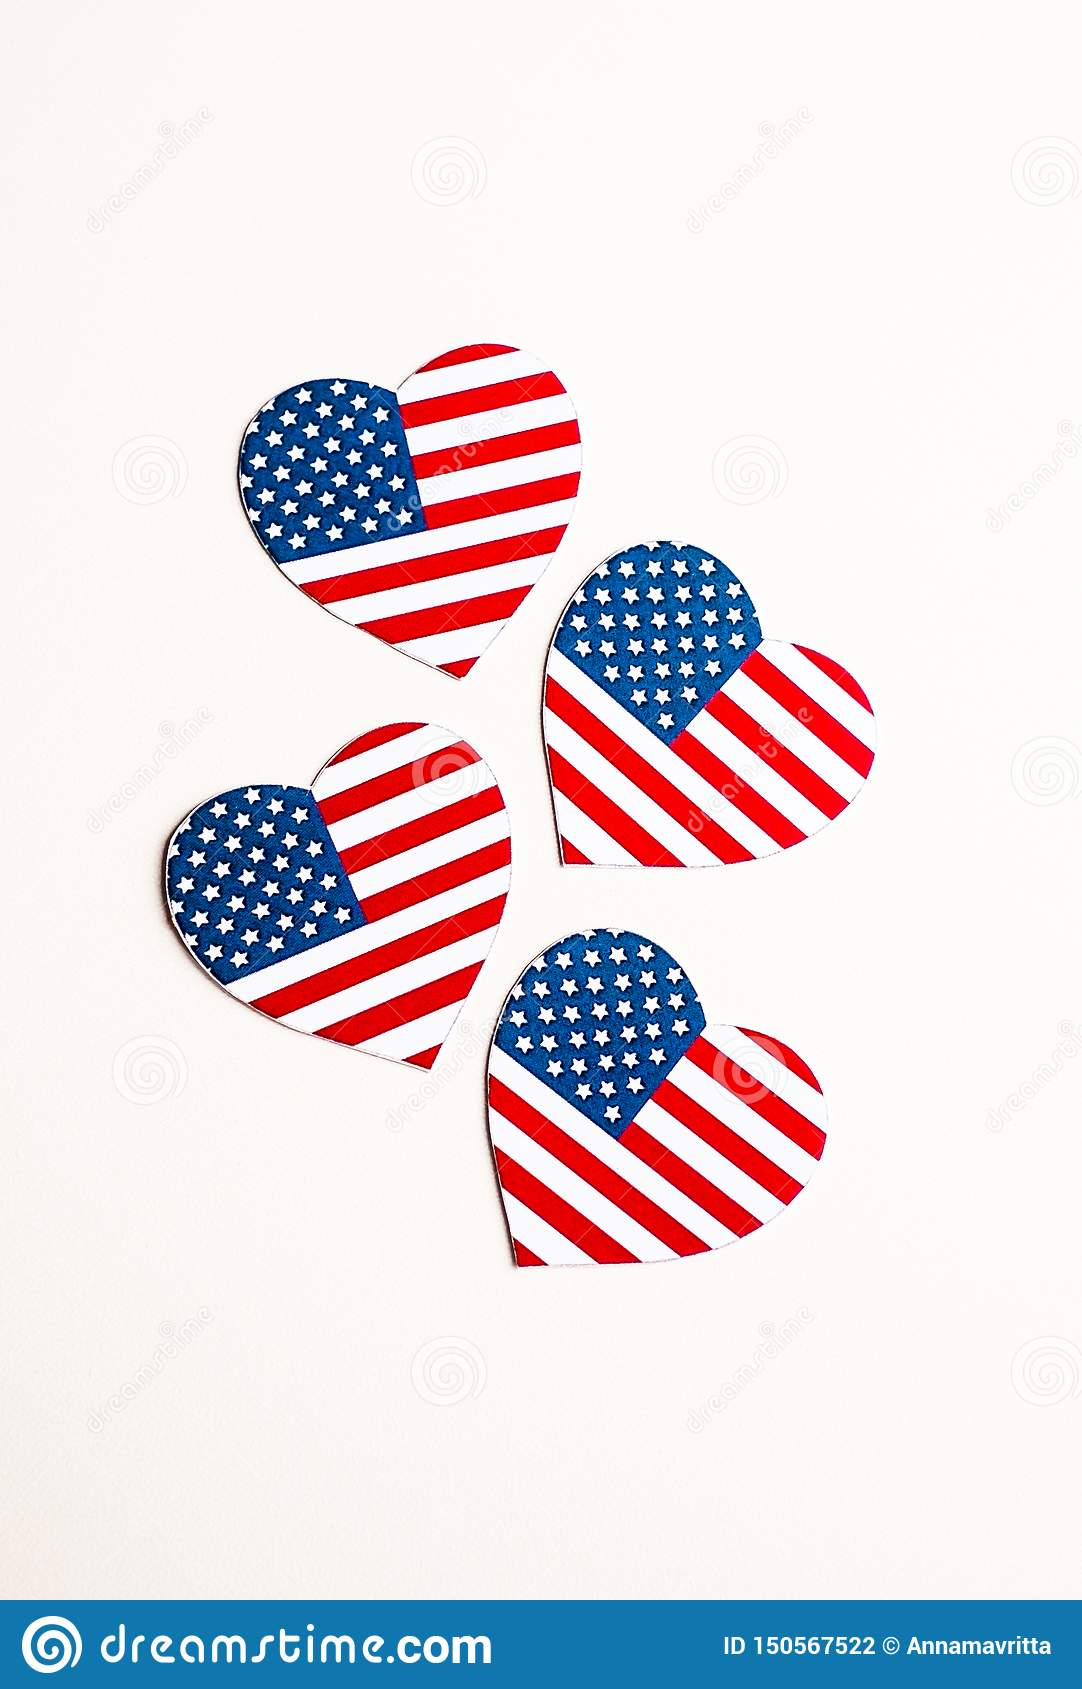 American Independence day background with blue, white and red mixed stars and hearts. Celebration of American independence day, th